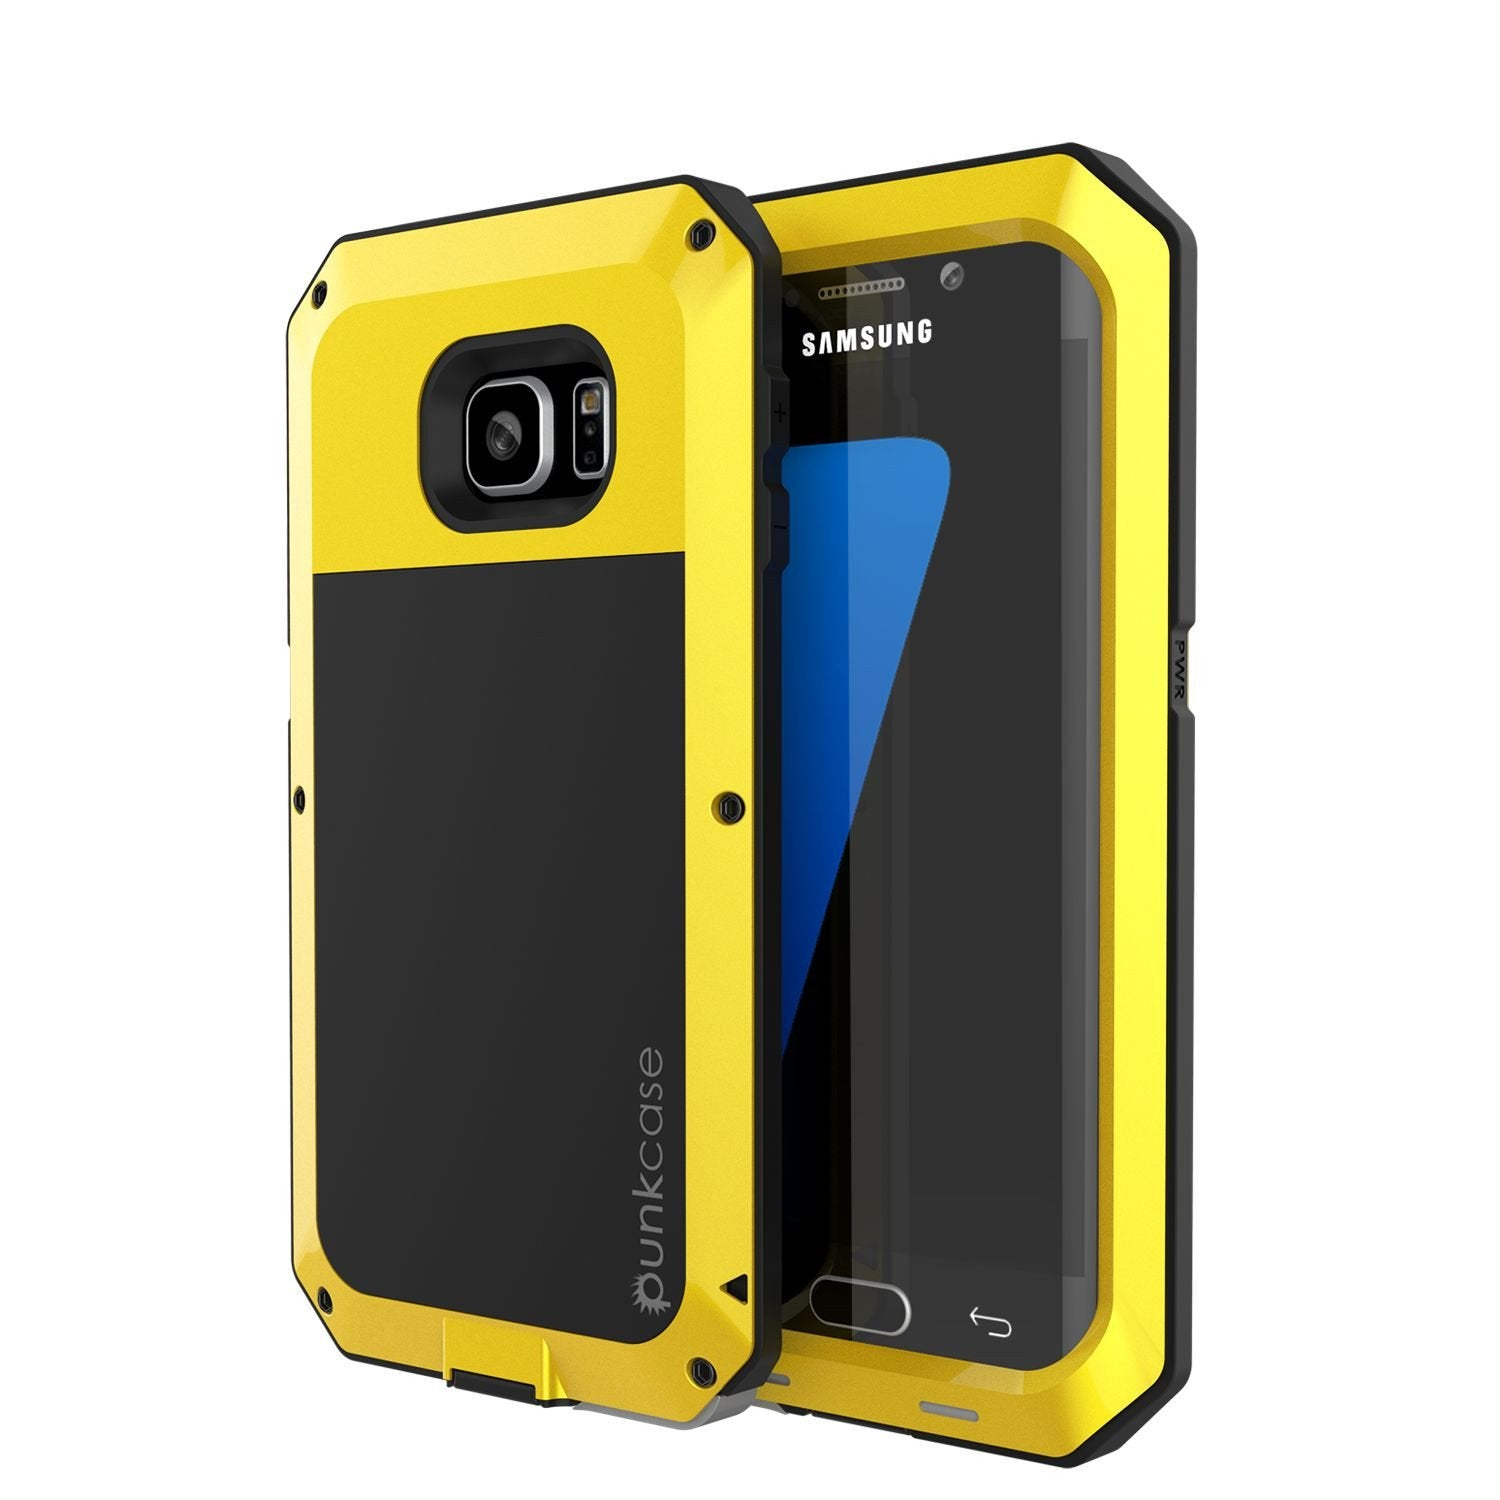 Galaxy S7 EDGE  Case, PUNKcase Metallic Neon Shockproof  Slim Metal Armor Case